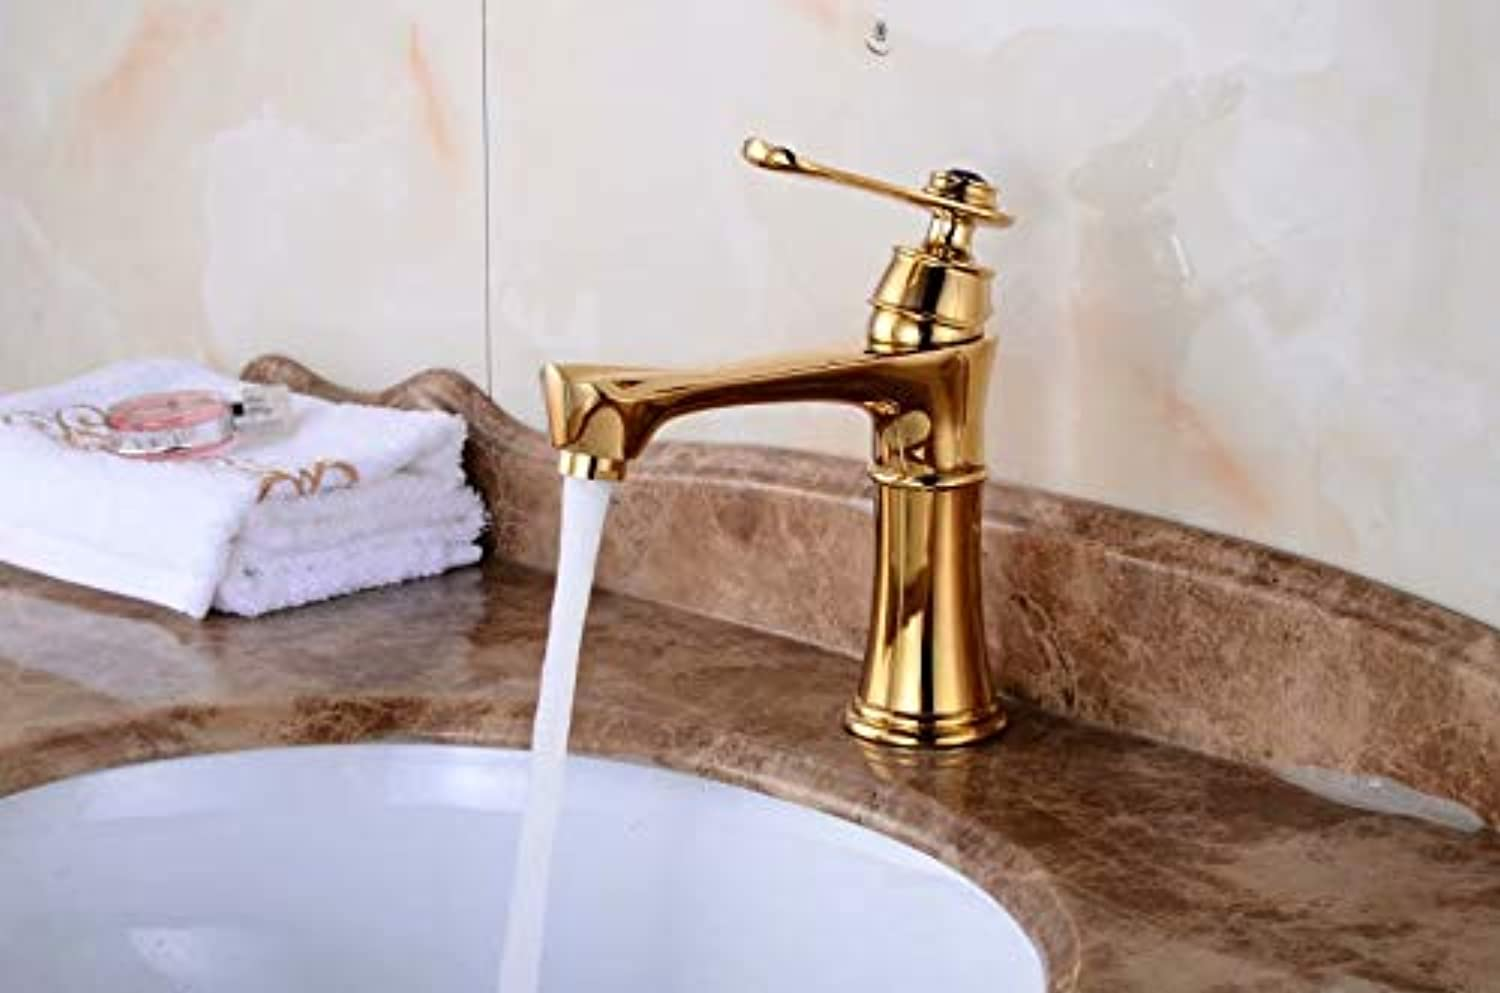 JONTON Taps Taps Taps Basin Faucet_Factory Direct Hot And Cold Water European gold All Copper Basin Faucet